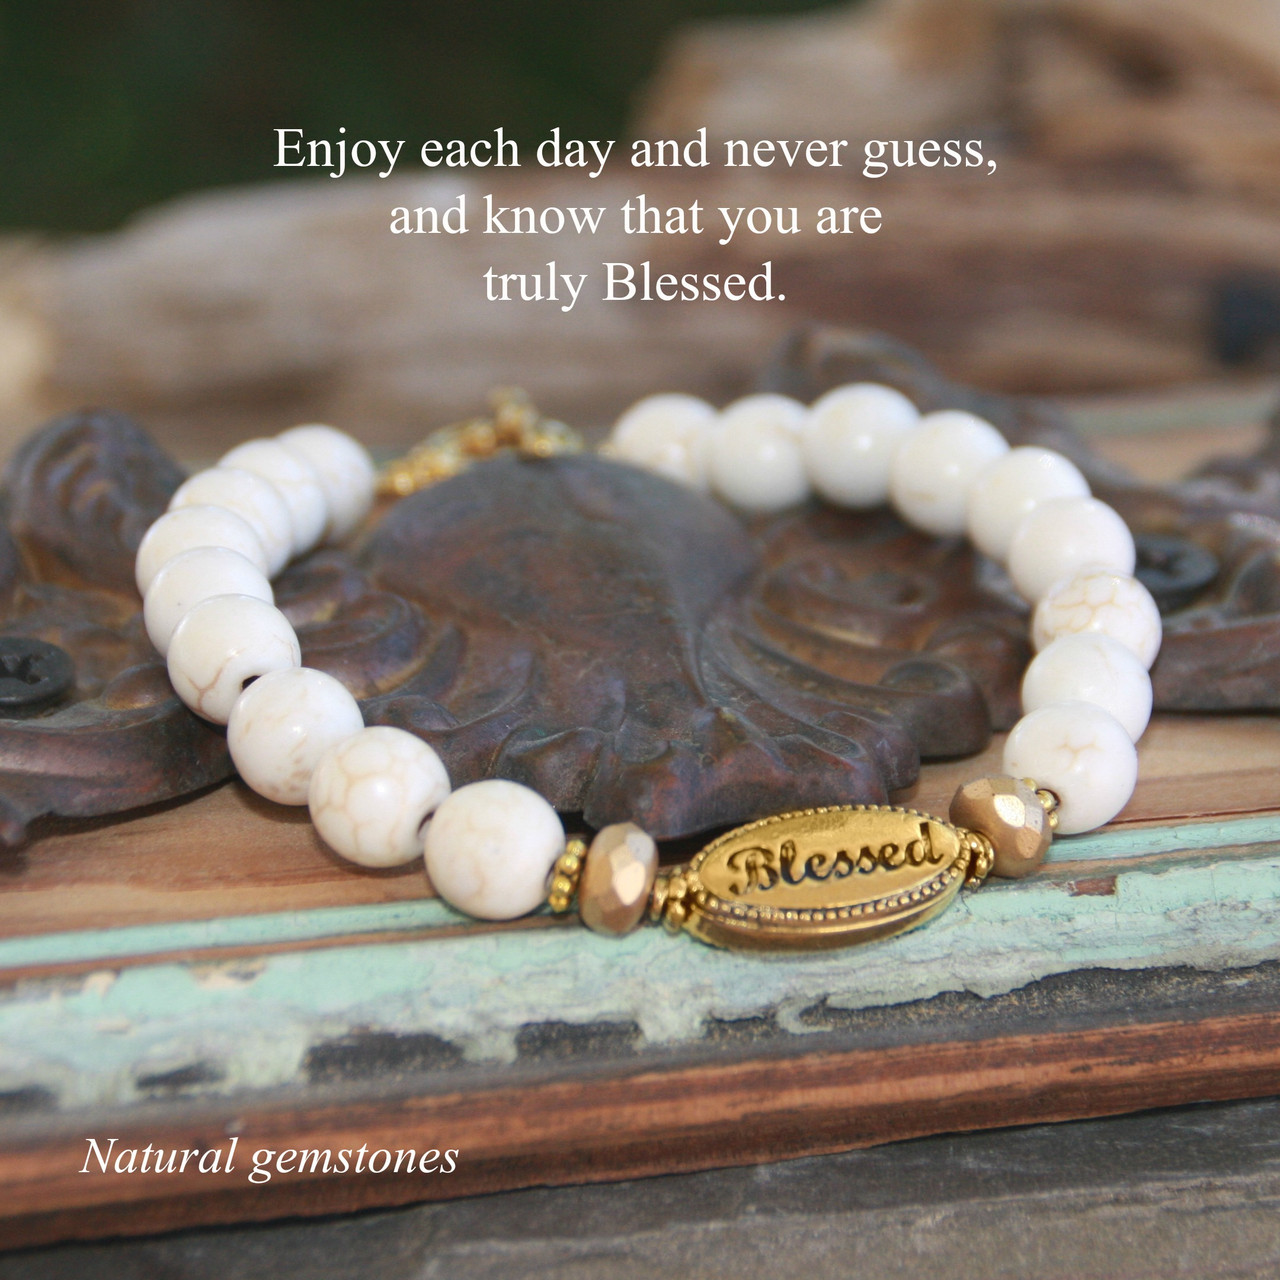 IN-740  Blessed Natural Gemstone Bracelet